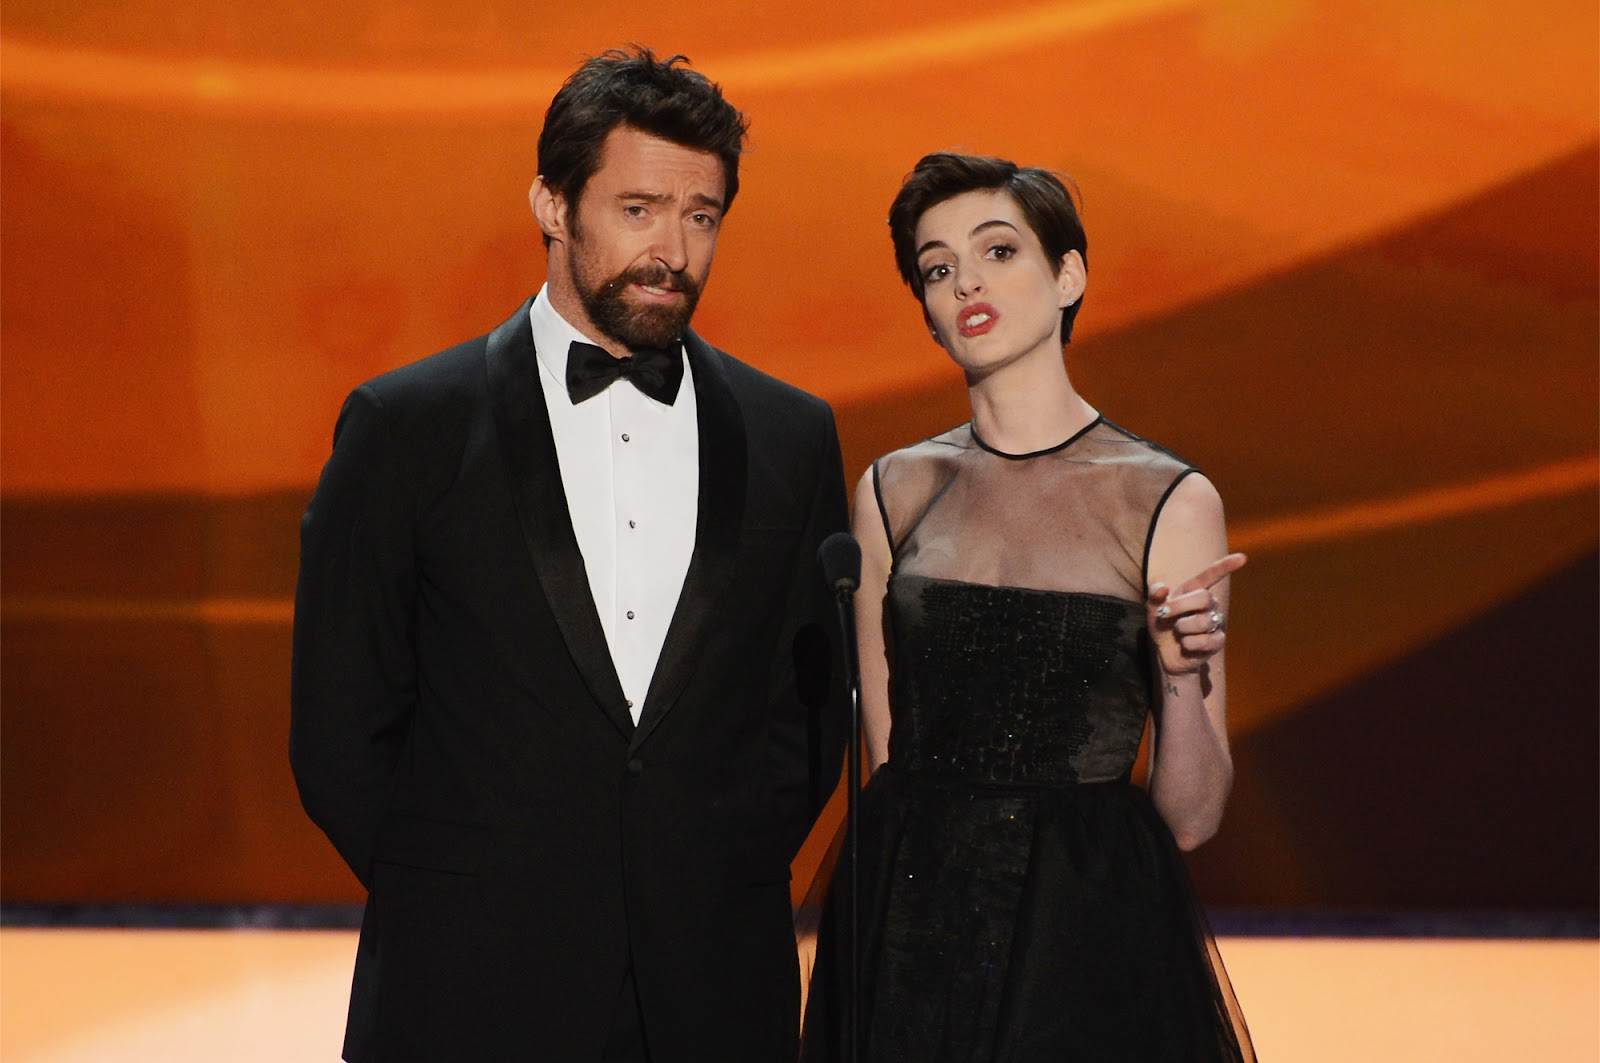 http://1.bp.blogspot.com/-oCTHk0o0a8Q/UQZ6EALxHdI/AAAAAAABTEg/u2OQwBWuBr8/s1600/Anne_Hathaway-Hugh_Jackman-19th_Annual_Screen_Actors_Guild_Awards-1_27_2013-004.jpg